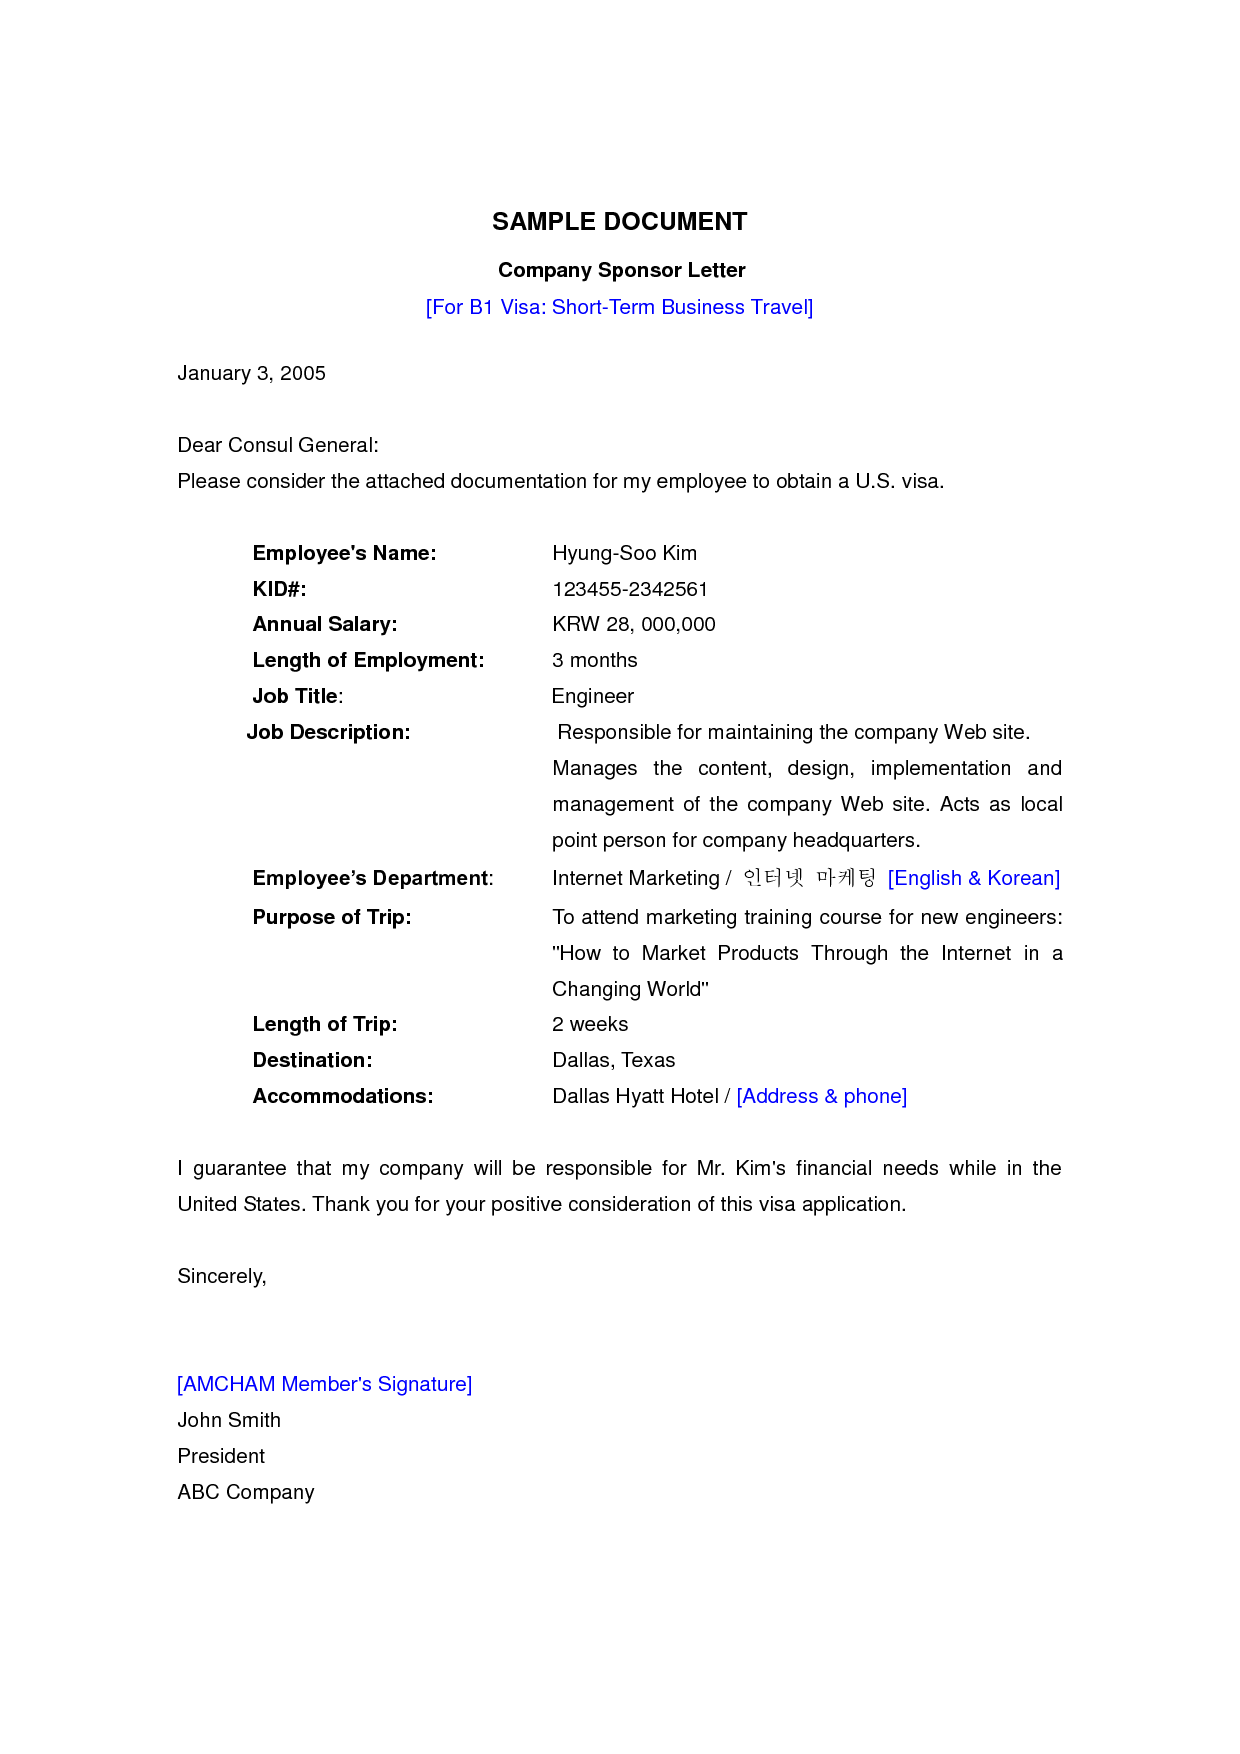 Sample Application Letter For Uk Visa